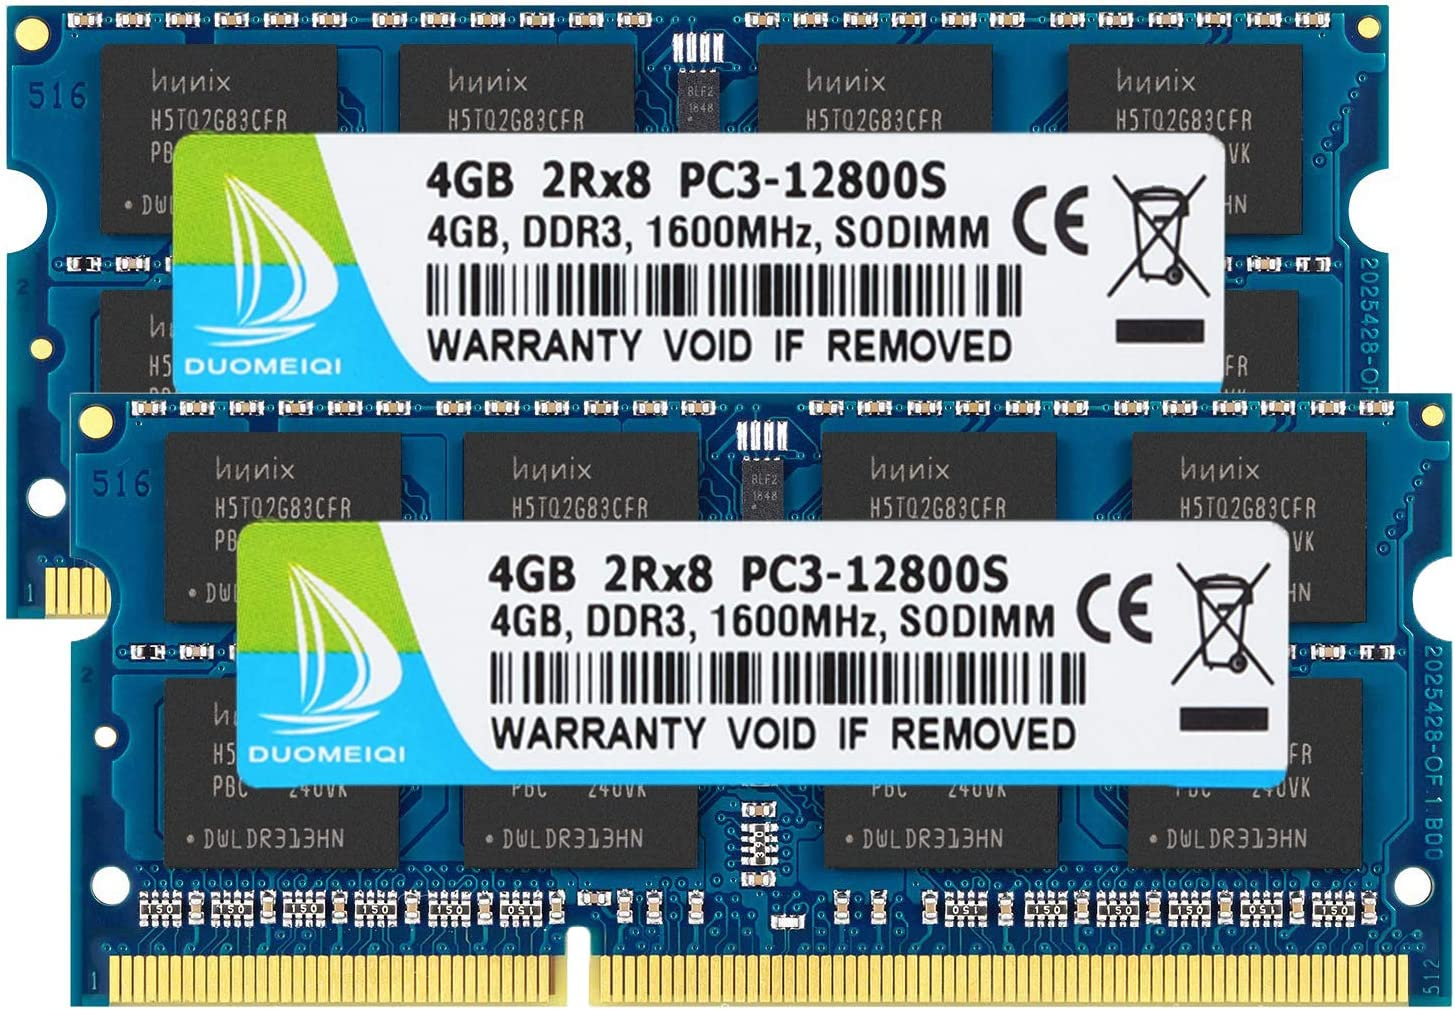 DUOMEIQI 8GB Kit (2 X 4GB) 2RX8 PC3-12800 PC3-12800S DDR3 1600MHz SO-DIMM CL9 204 Pin 1.5v Non-ECC Unbuffered Laptop Memory Notebook RAM Module for Intel AMD and Mac Computer